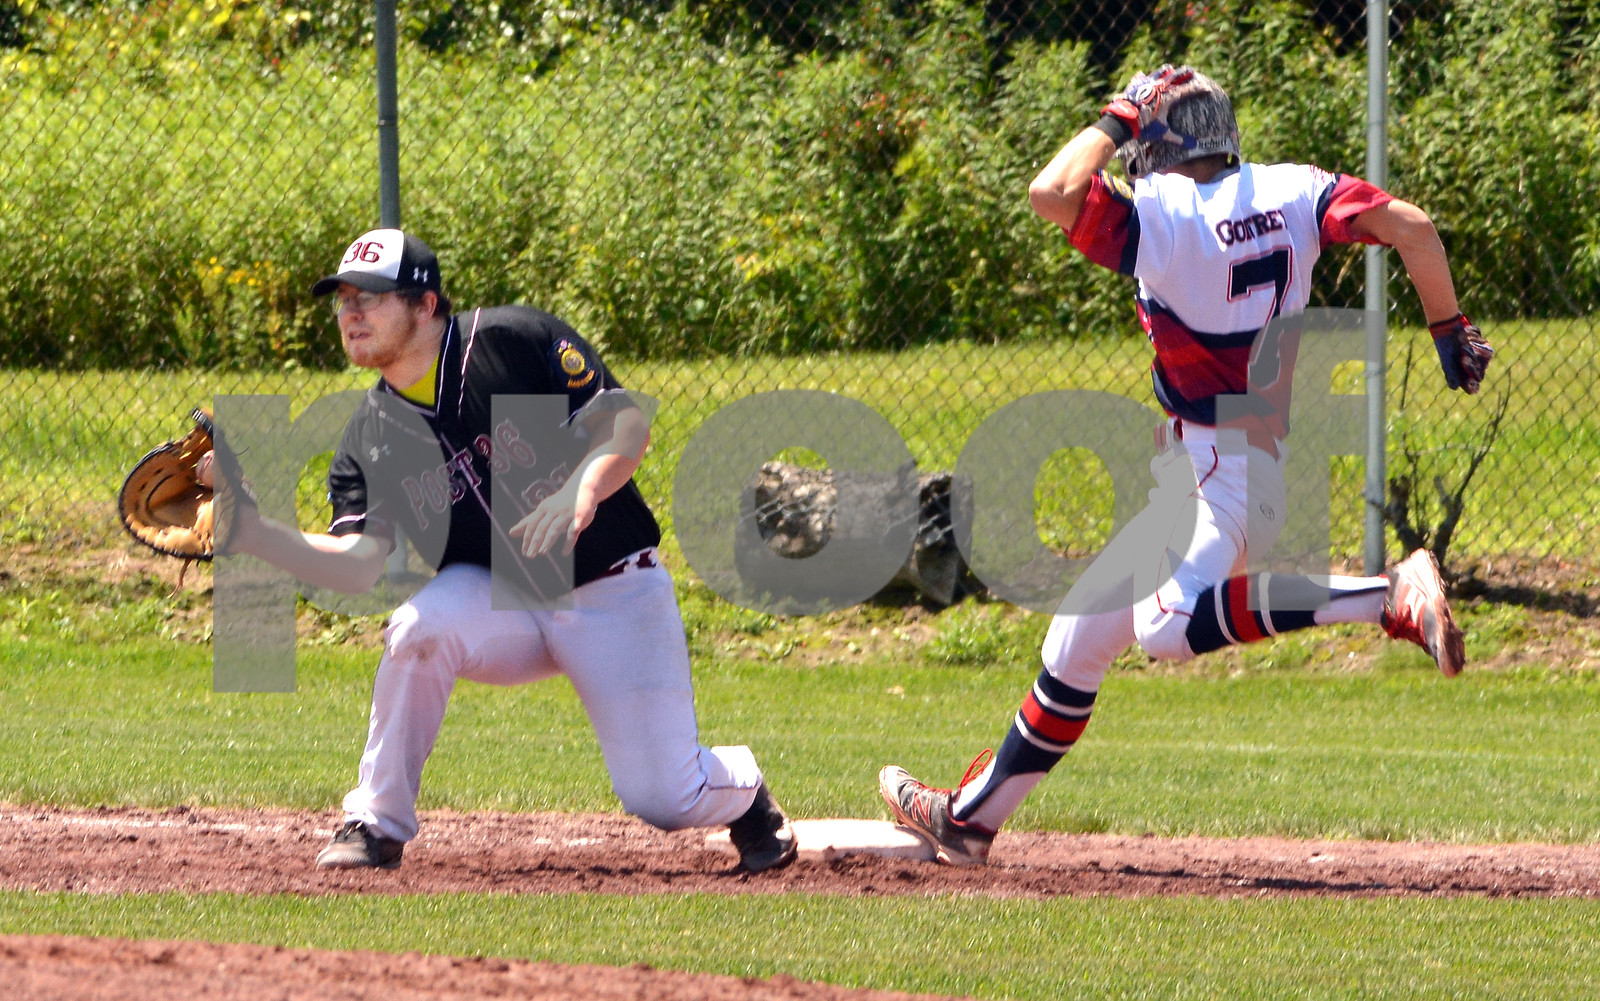 Photo by Albert J. Marro   Post 31's Jacob Godfrey (7) was ruled safe at first during the opening game of Saturday's twinbill  against Ludlow Post 36  at St. Peter's Field in Rutland. Post 36 first baseman is John Letourneau.  Post 31 won  17-0.